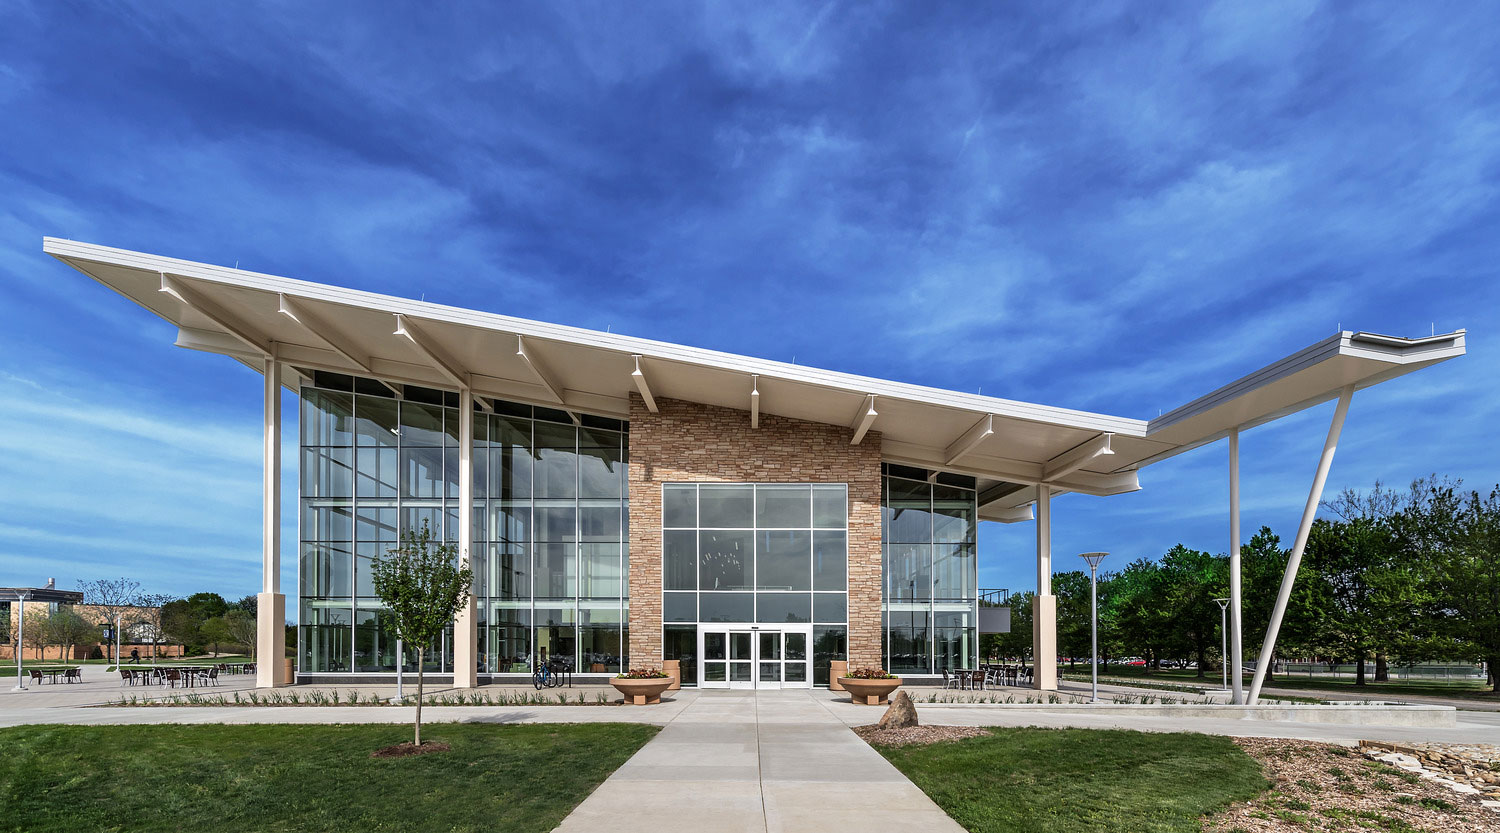 The new student union features a 25,000-square-foot green roof. Photo courtesy of Dewberry. Mark Ballogg, photographer.